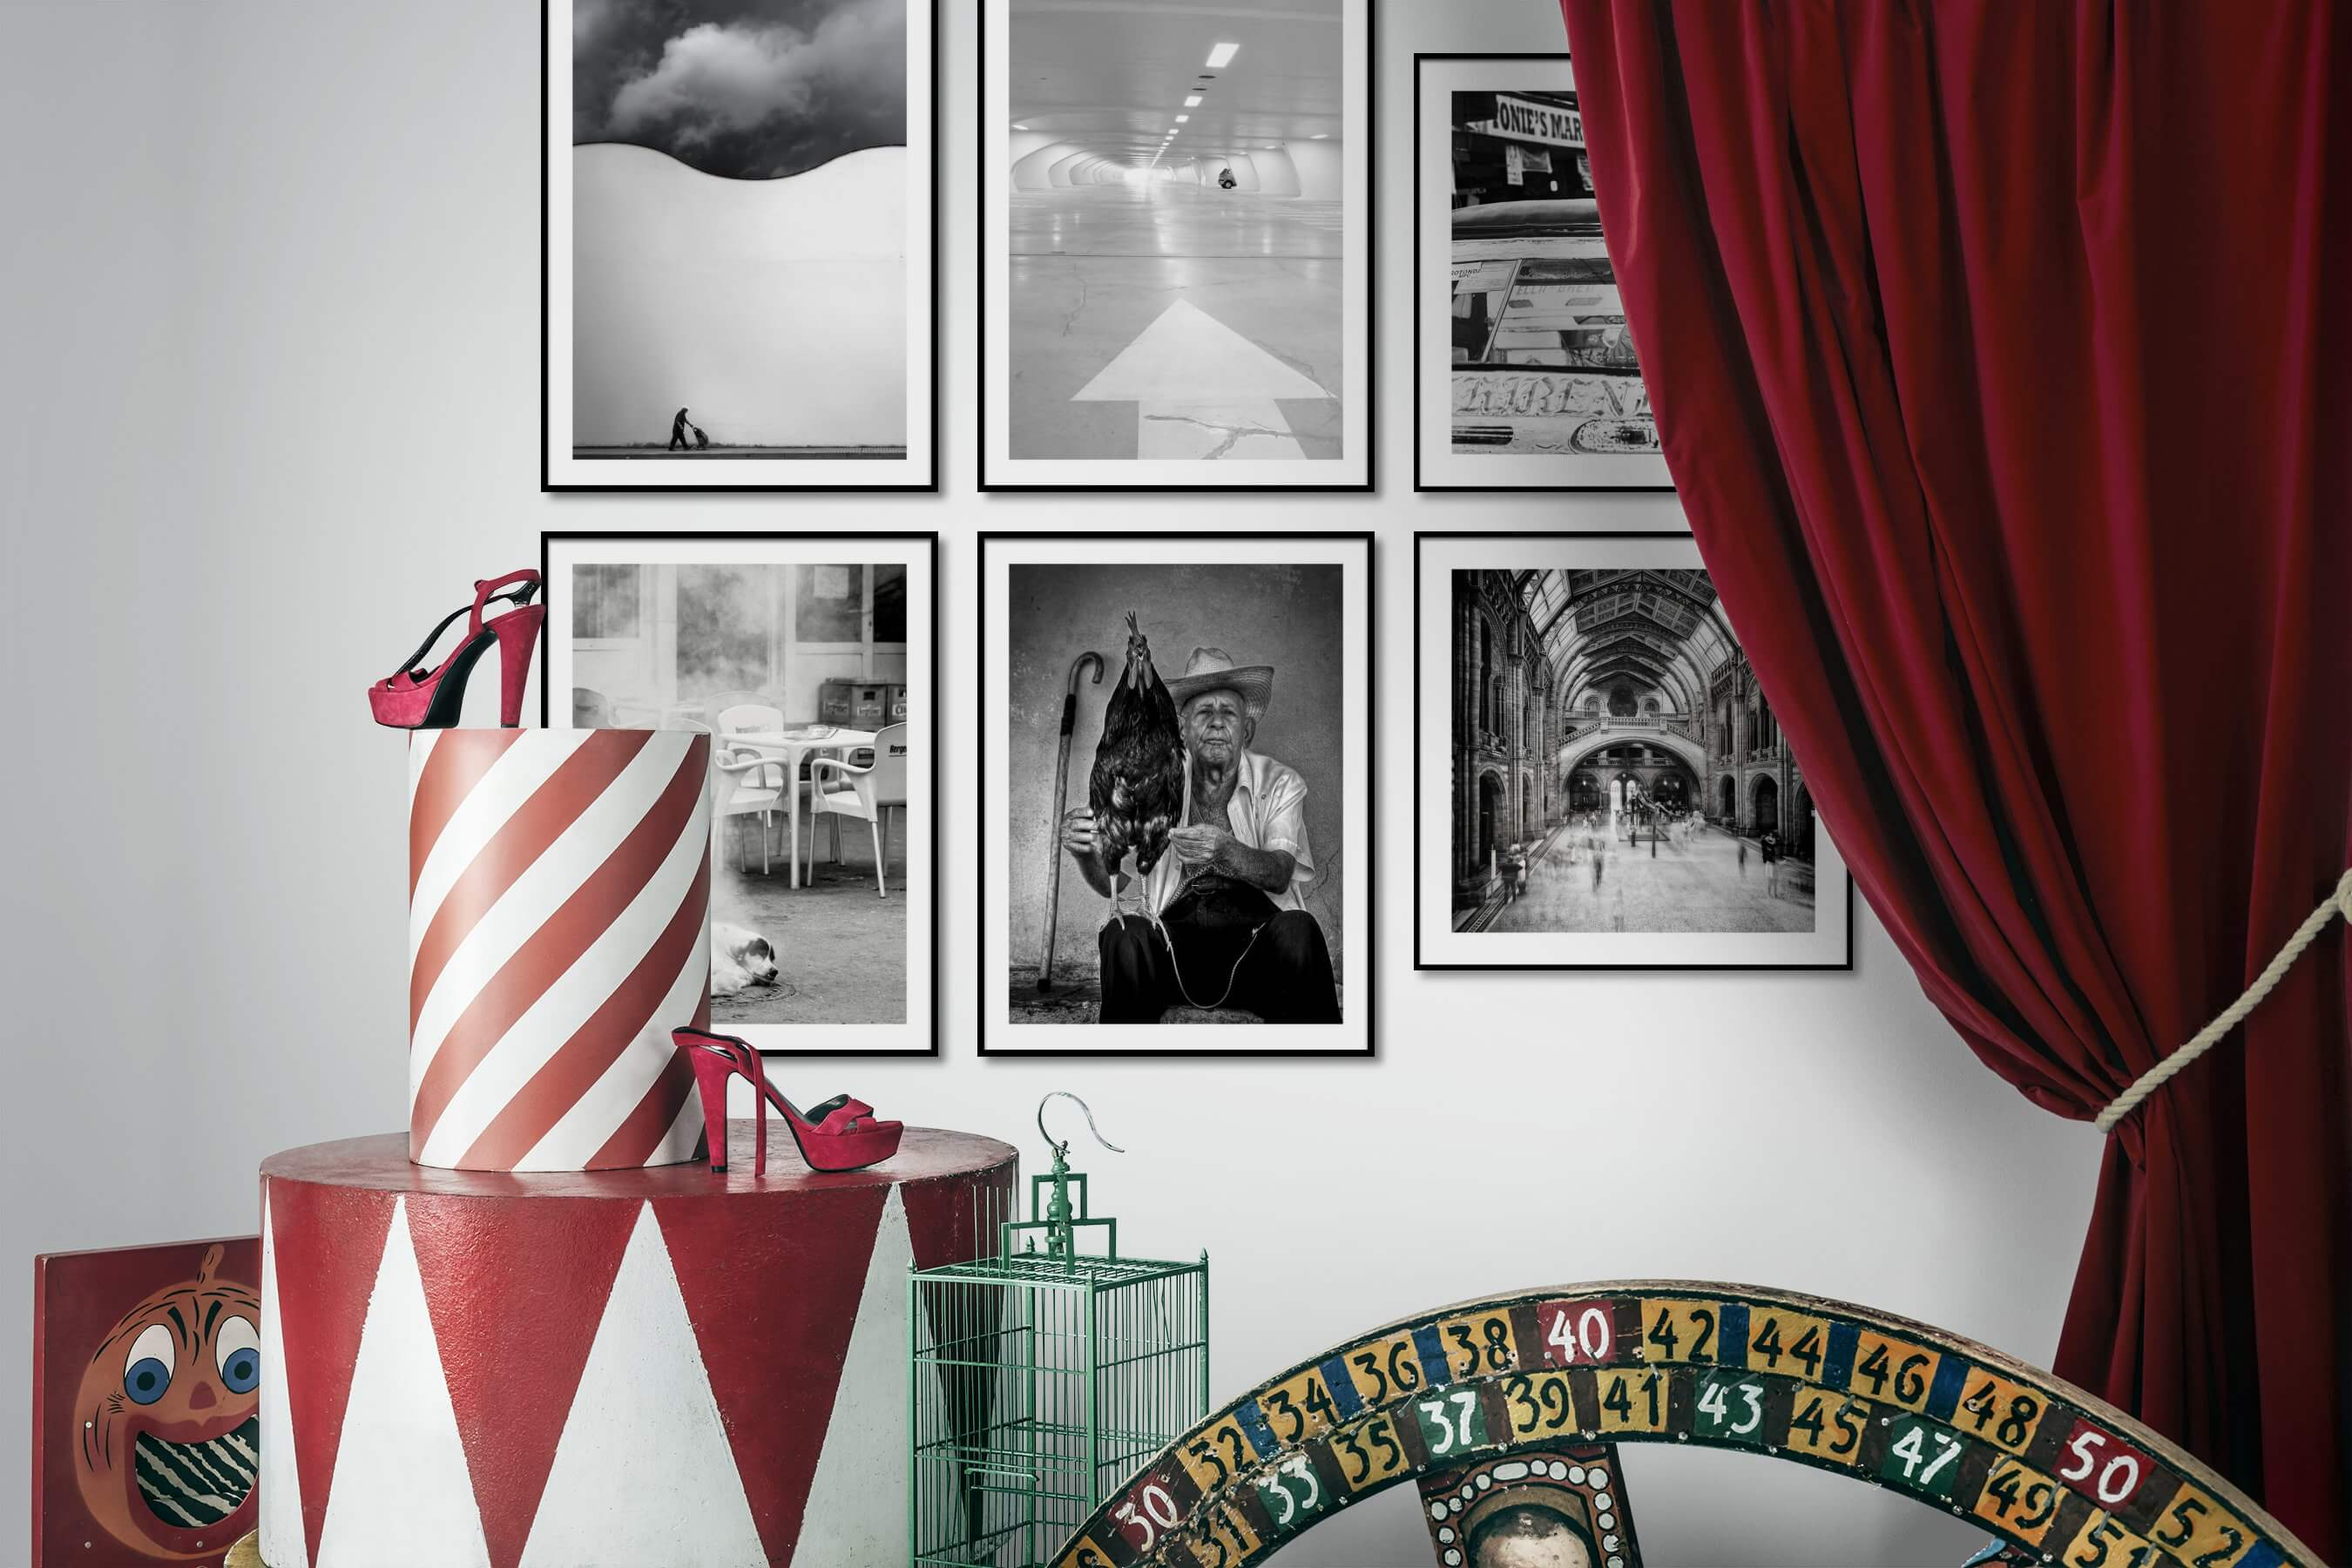 Gallery wall idea with six framed pictures arranged on a wall depicting Black & White, For the Minimalist, City Life, For the Moderate, and Animals